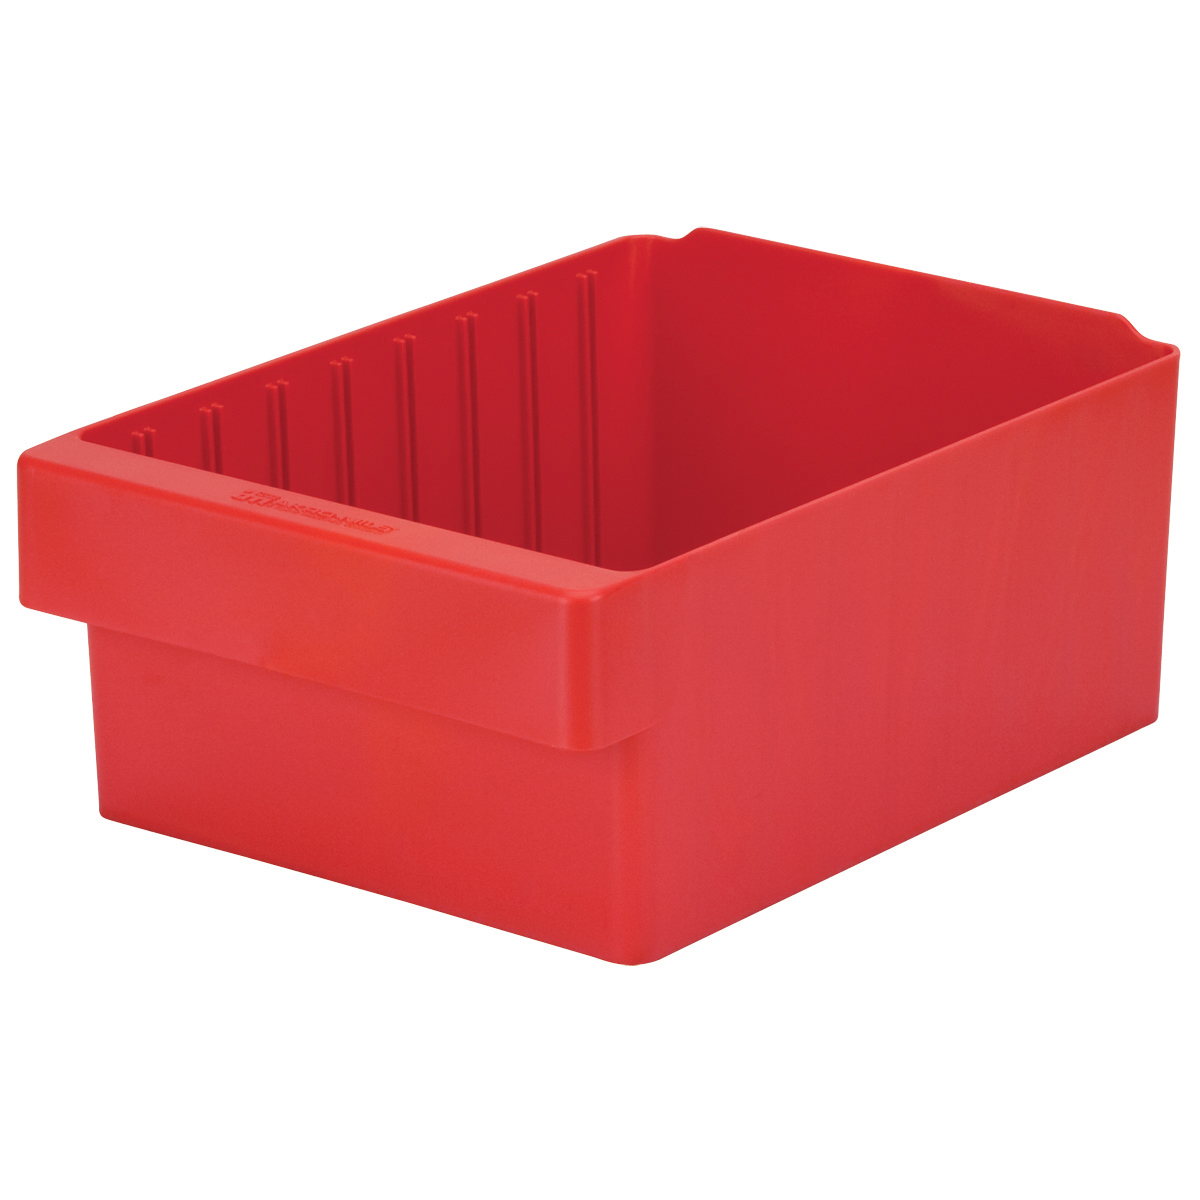 AkroDrawer 11-5/8 x 8-3/8 x 4-5/8, Red (31182RED).  This item sold in carton quantities of 4.